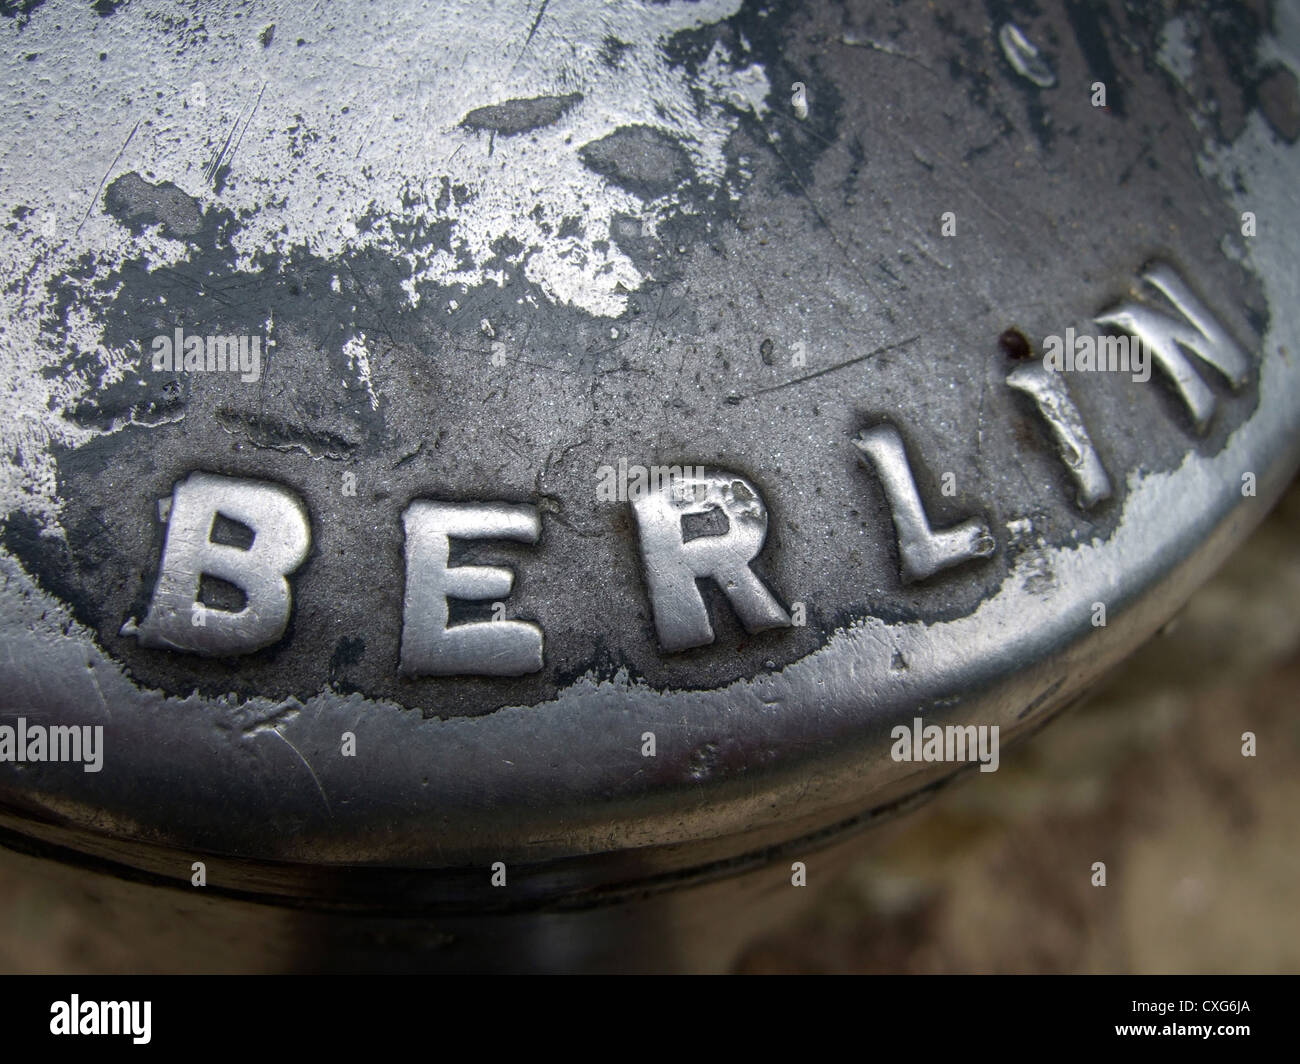 Scuffed Berlin logo - Stock Image